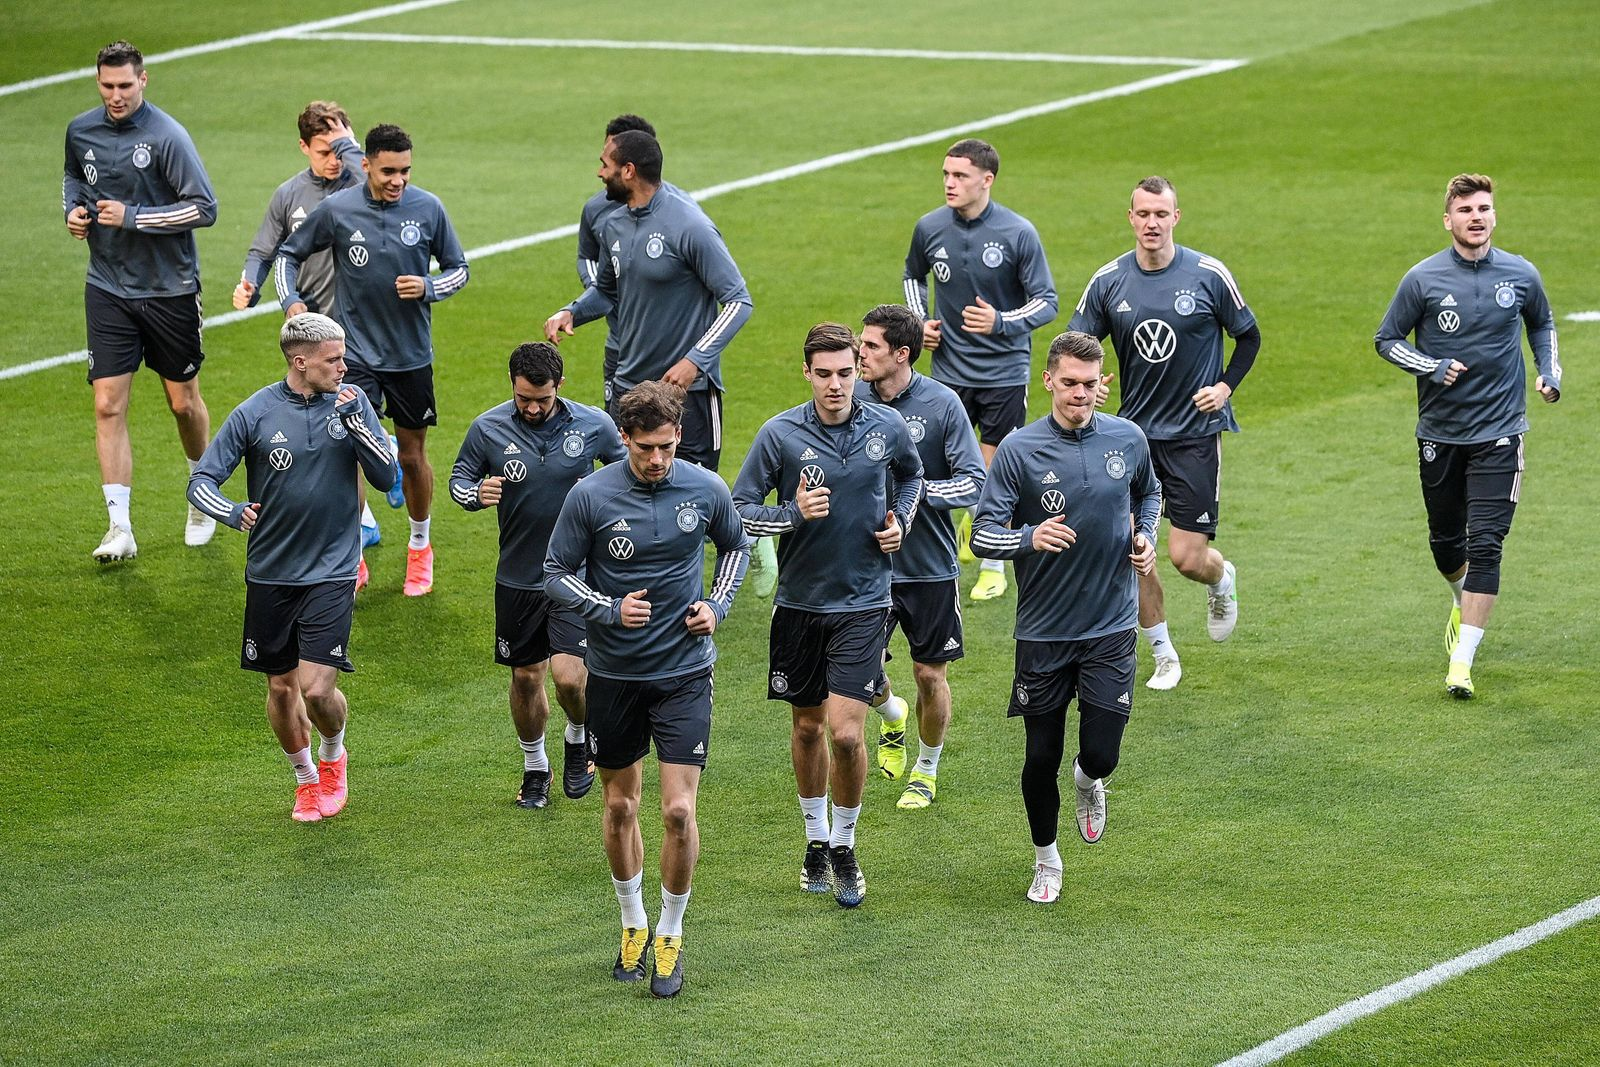 (210325) -- DUISBURG, March 25, 2021 -- Players of Germany s national football team attend a training session in Duisbu